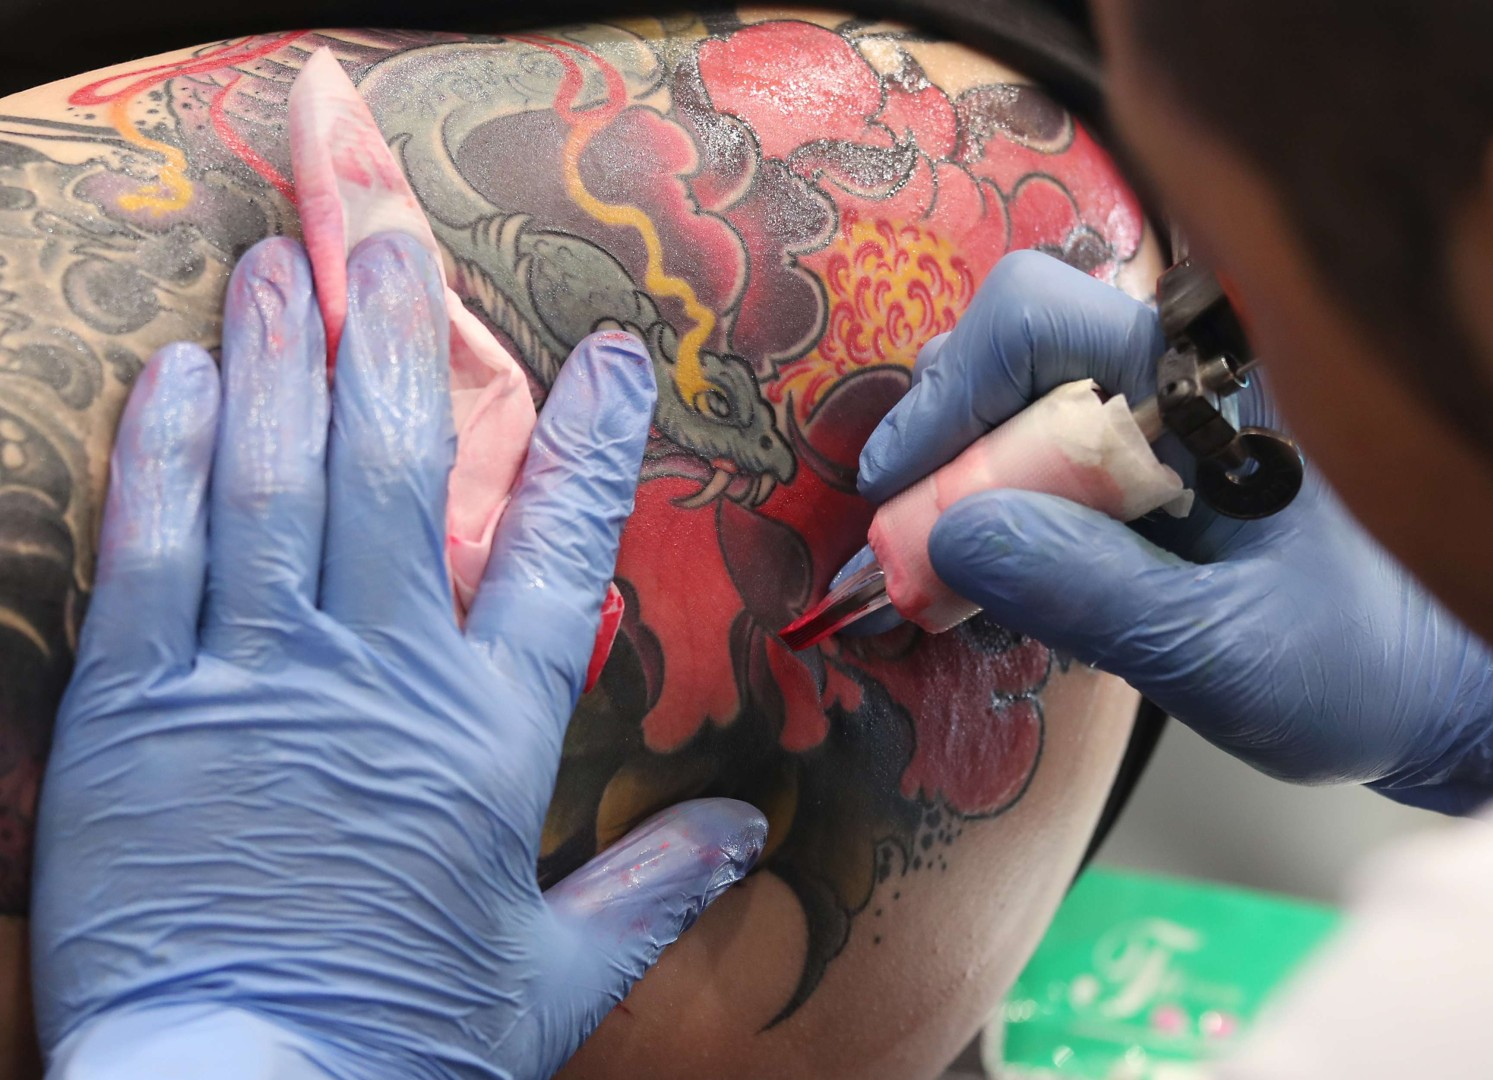 d0f61932f Millennials' love of body art is breaking down tattoo taboos, but still  wise to hide them at work | South China Morning Post